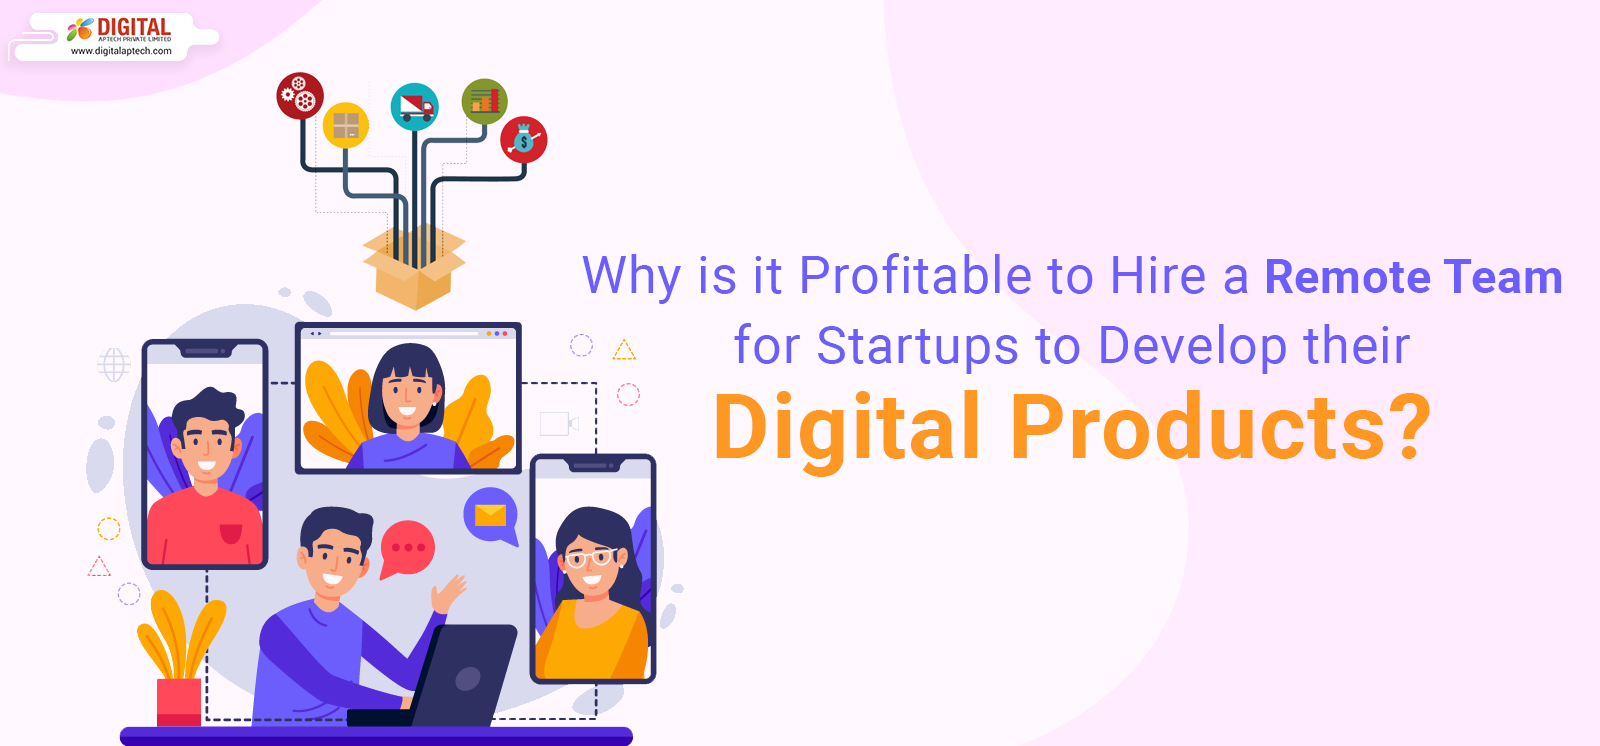 Why is it Profitable to Hire a Remote Team for Startups to Develop their Digital Products?